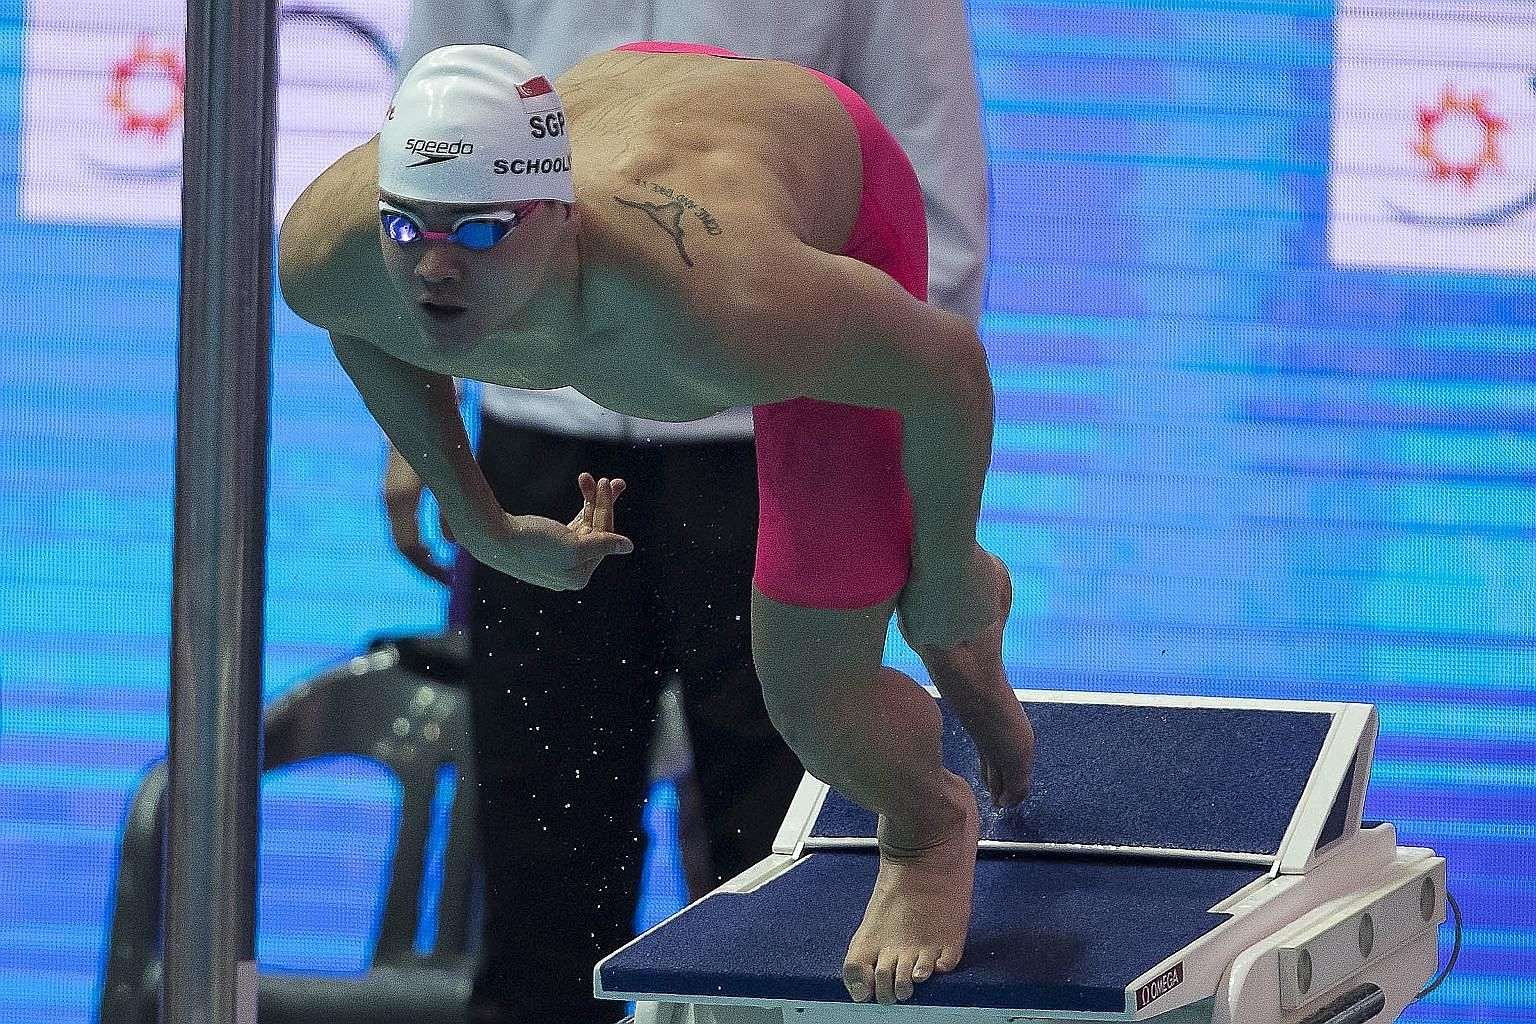 Joseph Schooling at the start of his 50m butterfly heat at the Fina World Championships in Gwangju yesterday. He clocked 23.73 seconds to finish seventh in his heat and 20th overall.